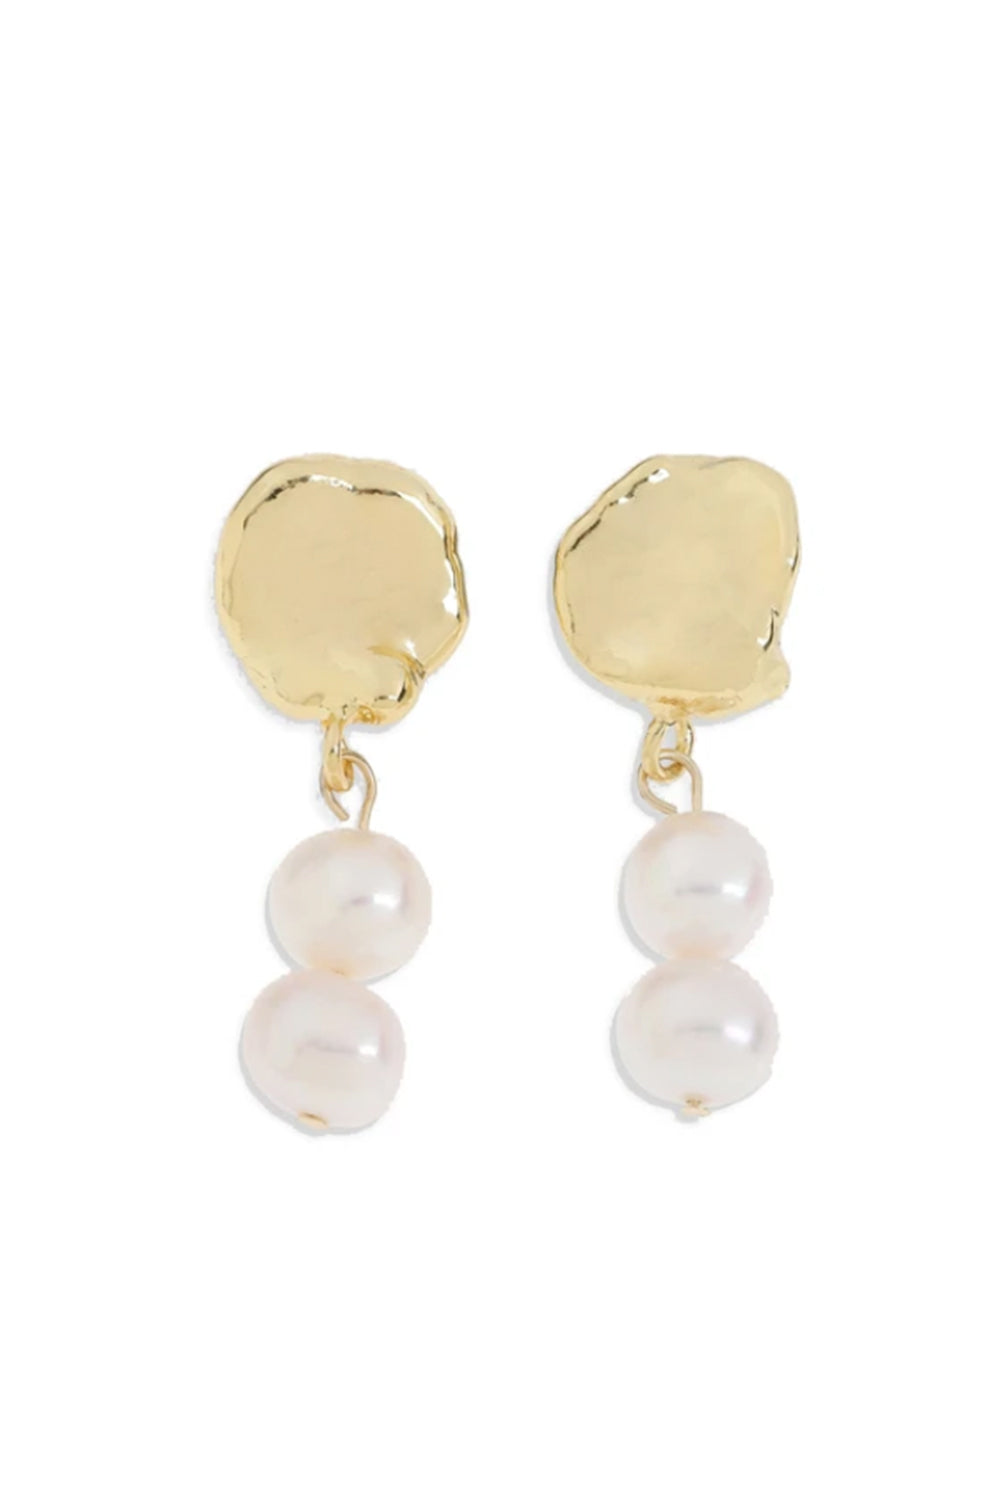 ARMS OF EVE - Toulouse Pearl Drop Gold Earrings - Australian Fashion and Accessories Boutique - Faid Store